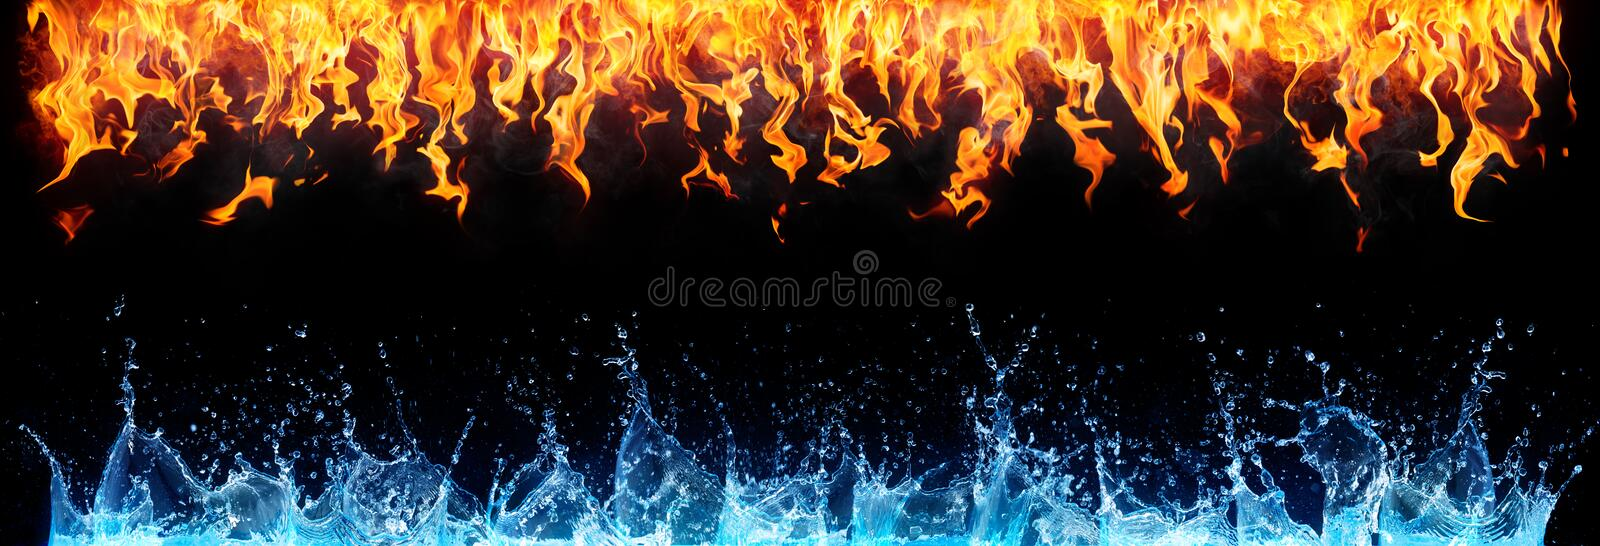 Fire and water on black stock image